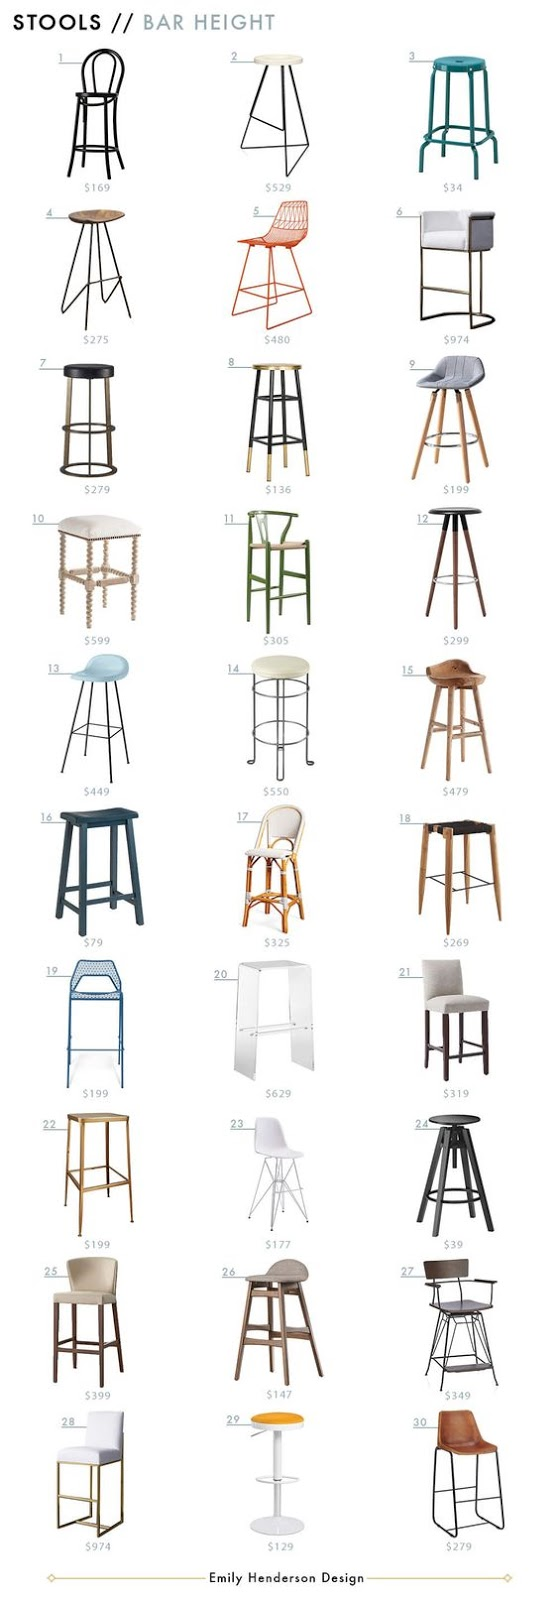 bar stool options